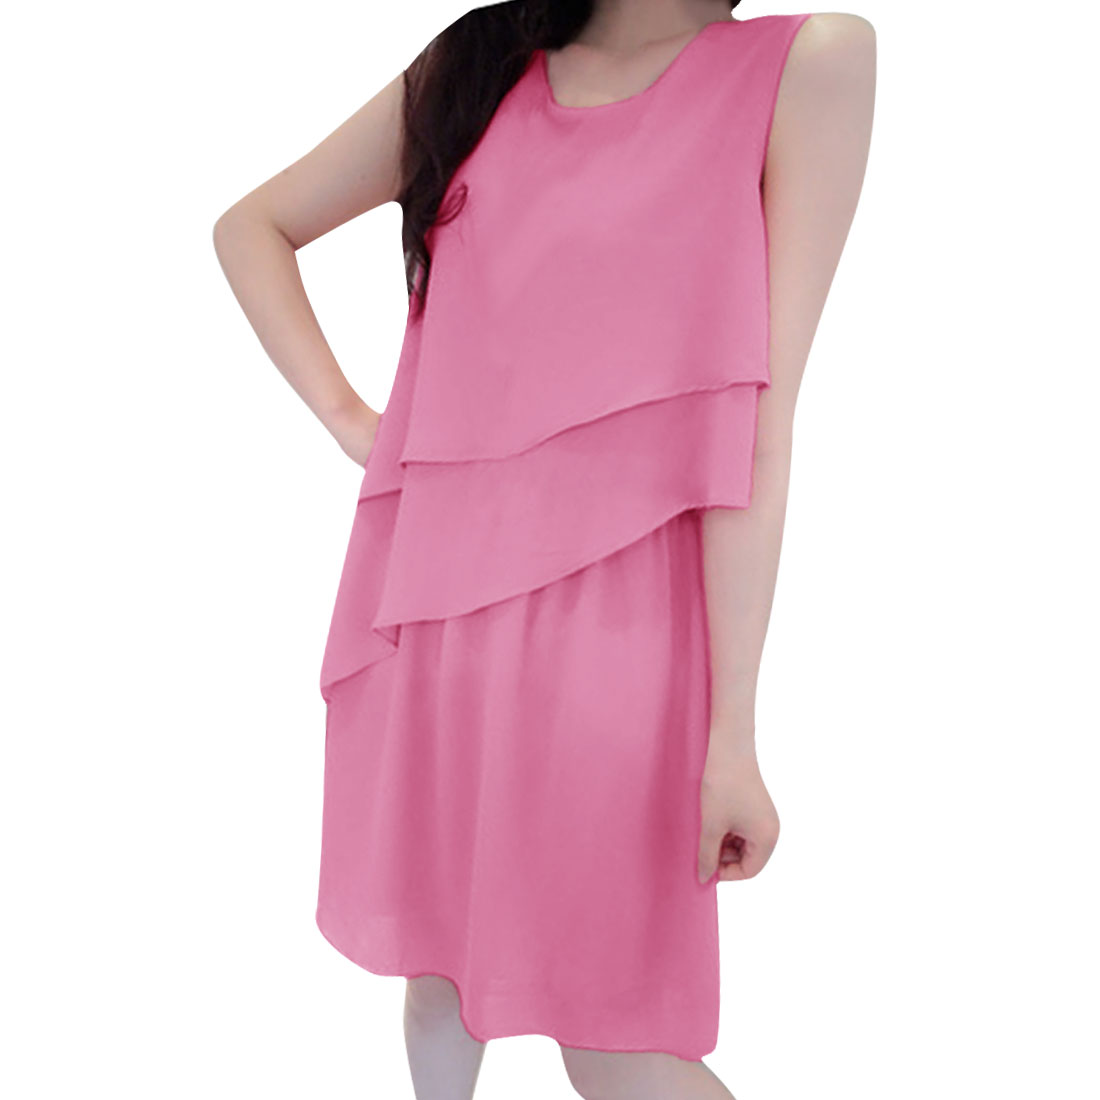 Woman Chic Round Neck Sleeveless Tiered Chiffon Hot Pink Above-Knee Dress S